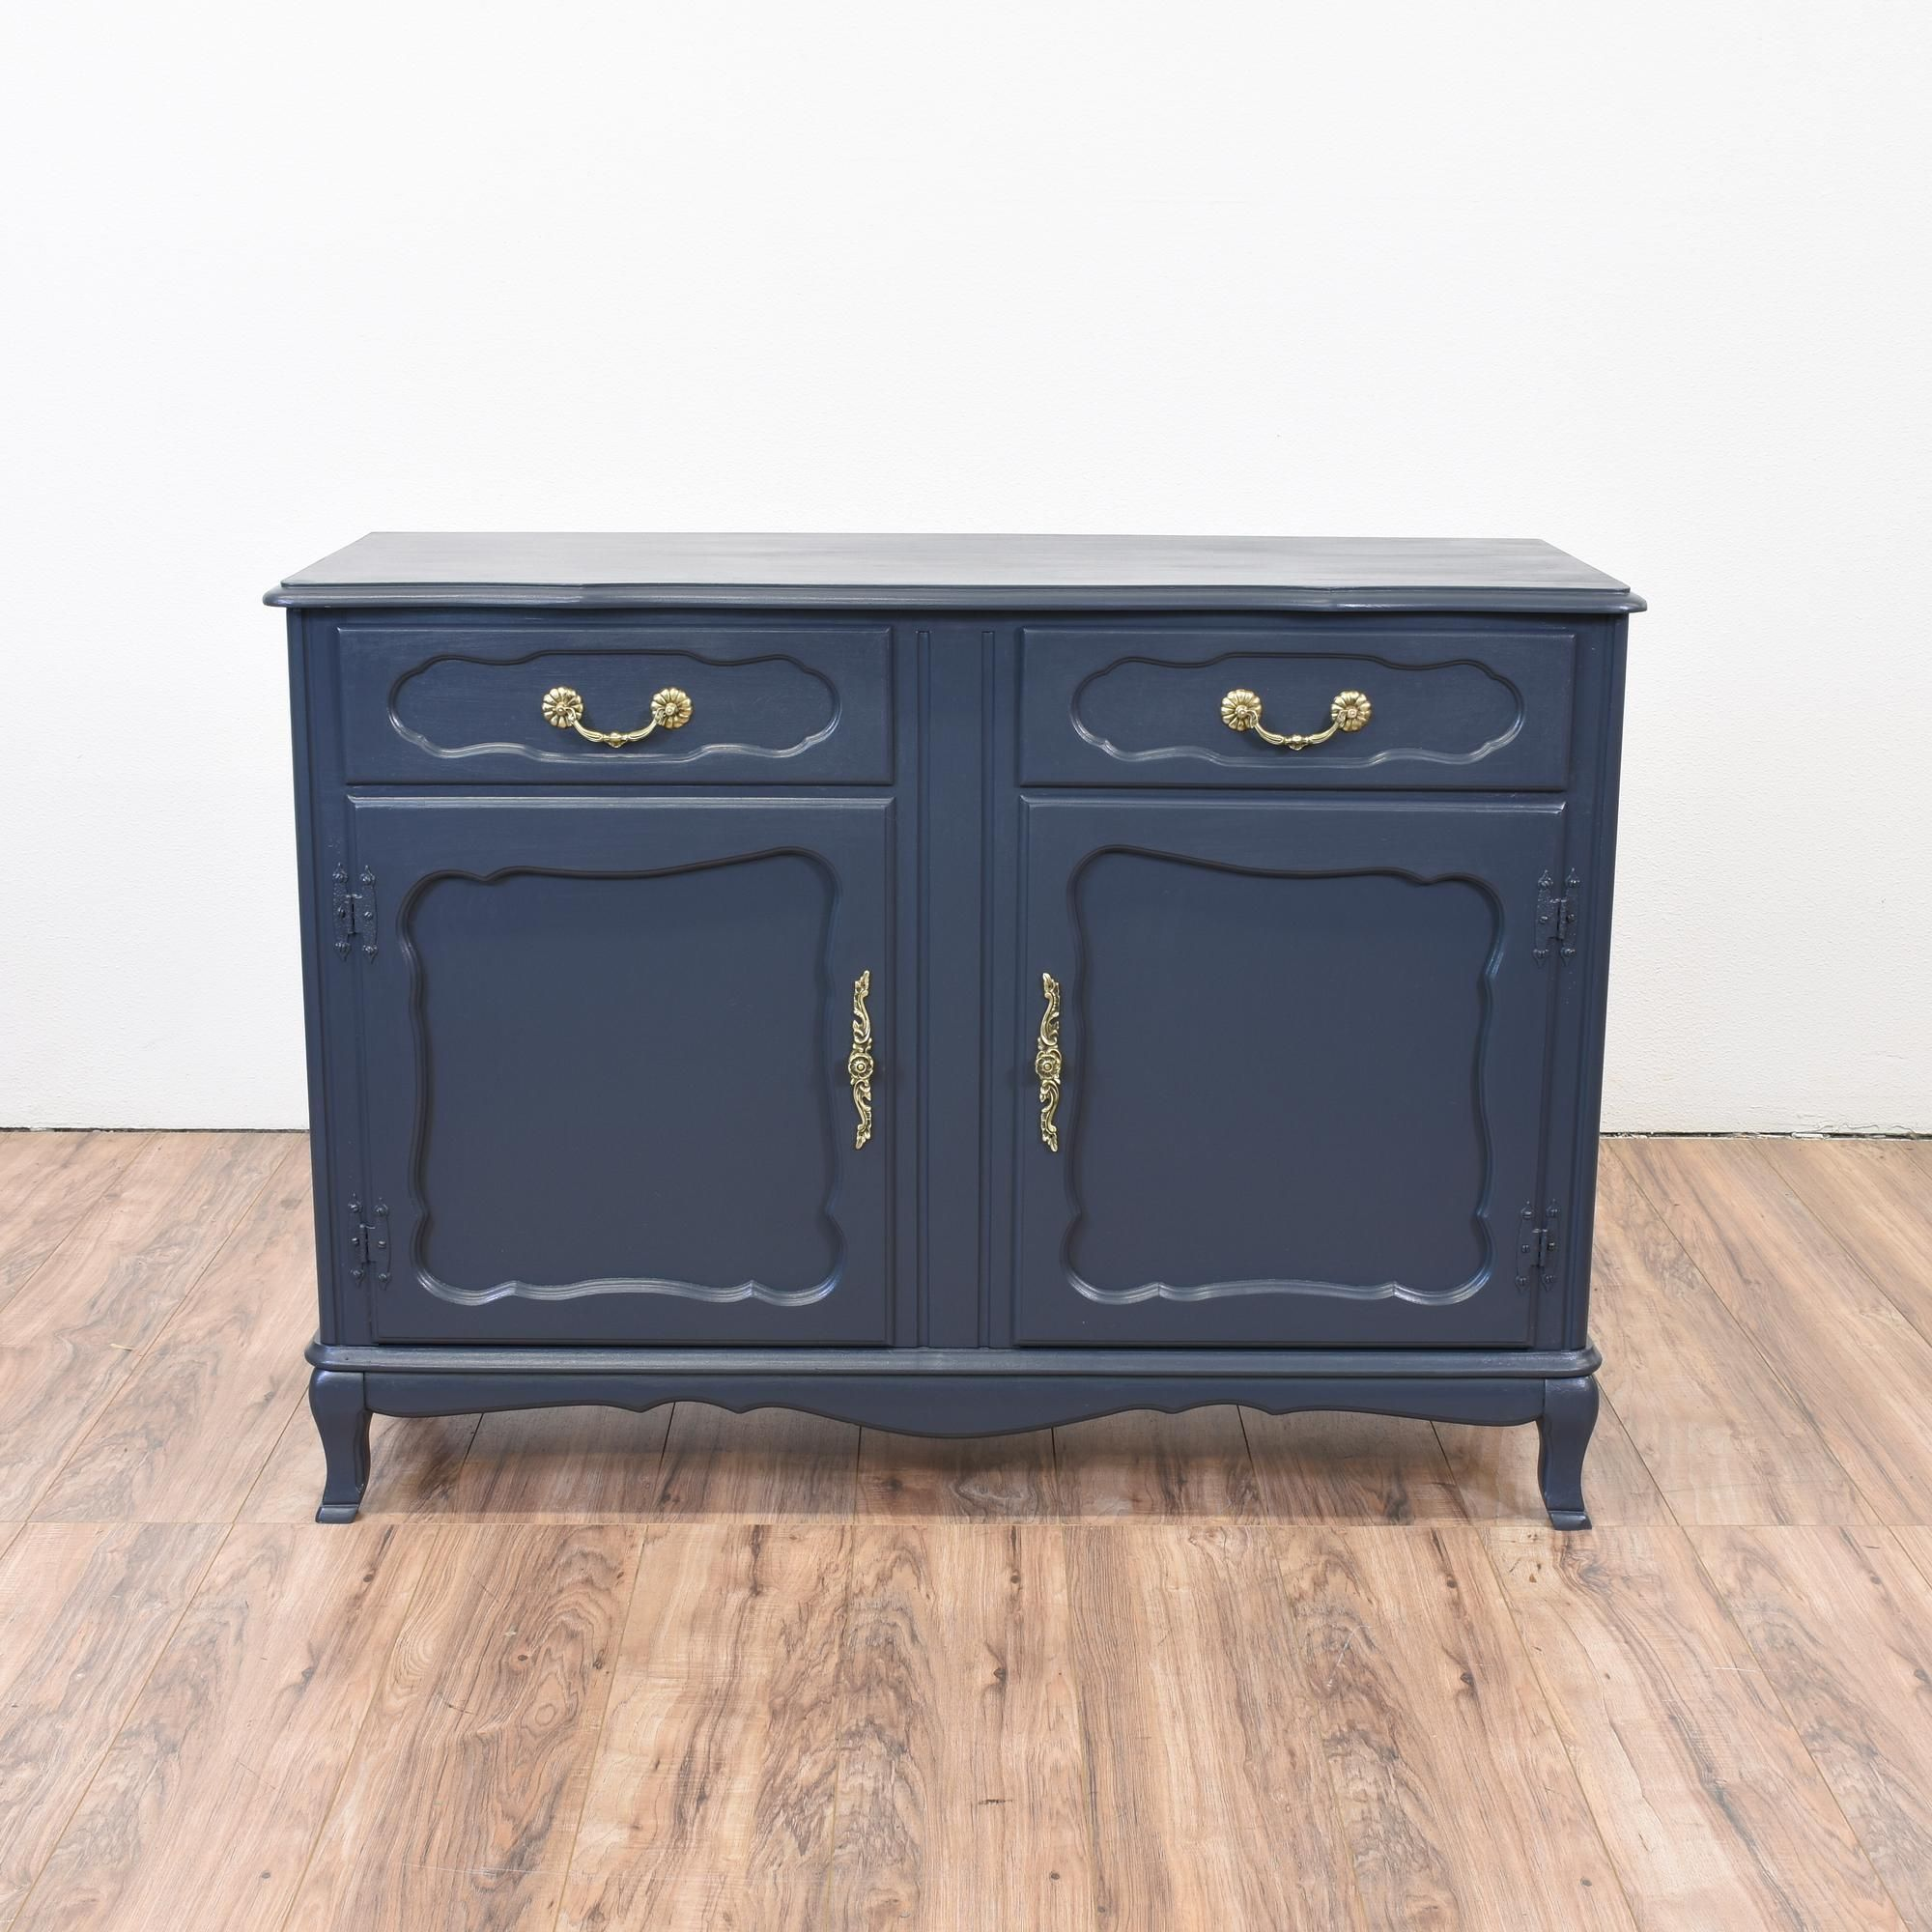 A gorgeous buffet for your dining room The piece features 2 drawers